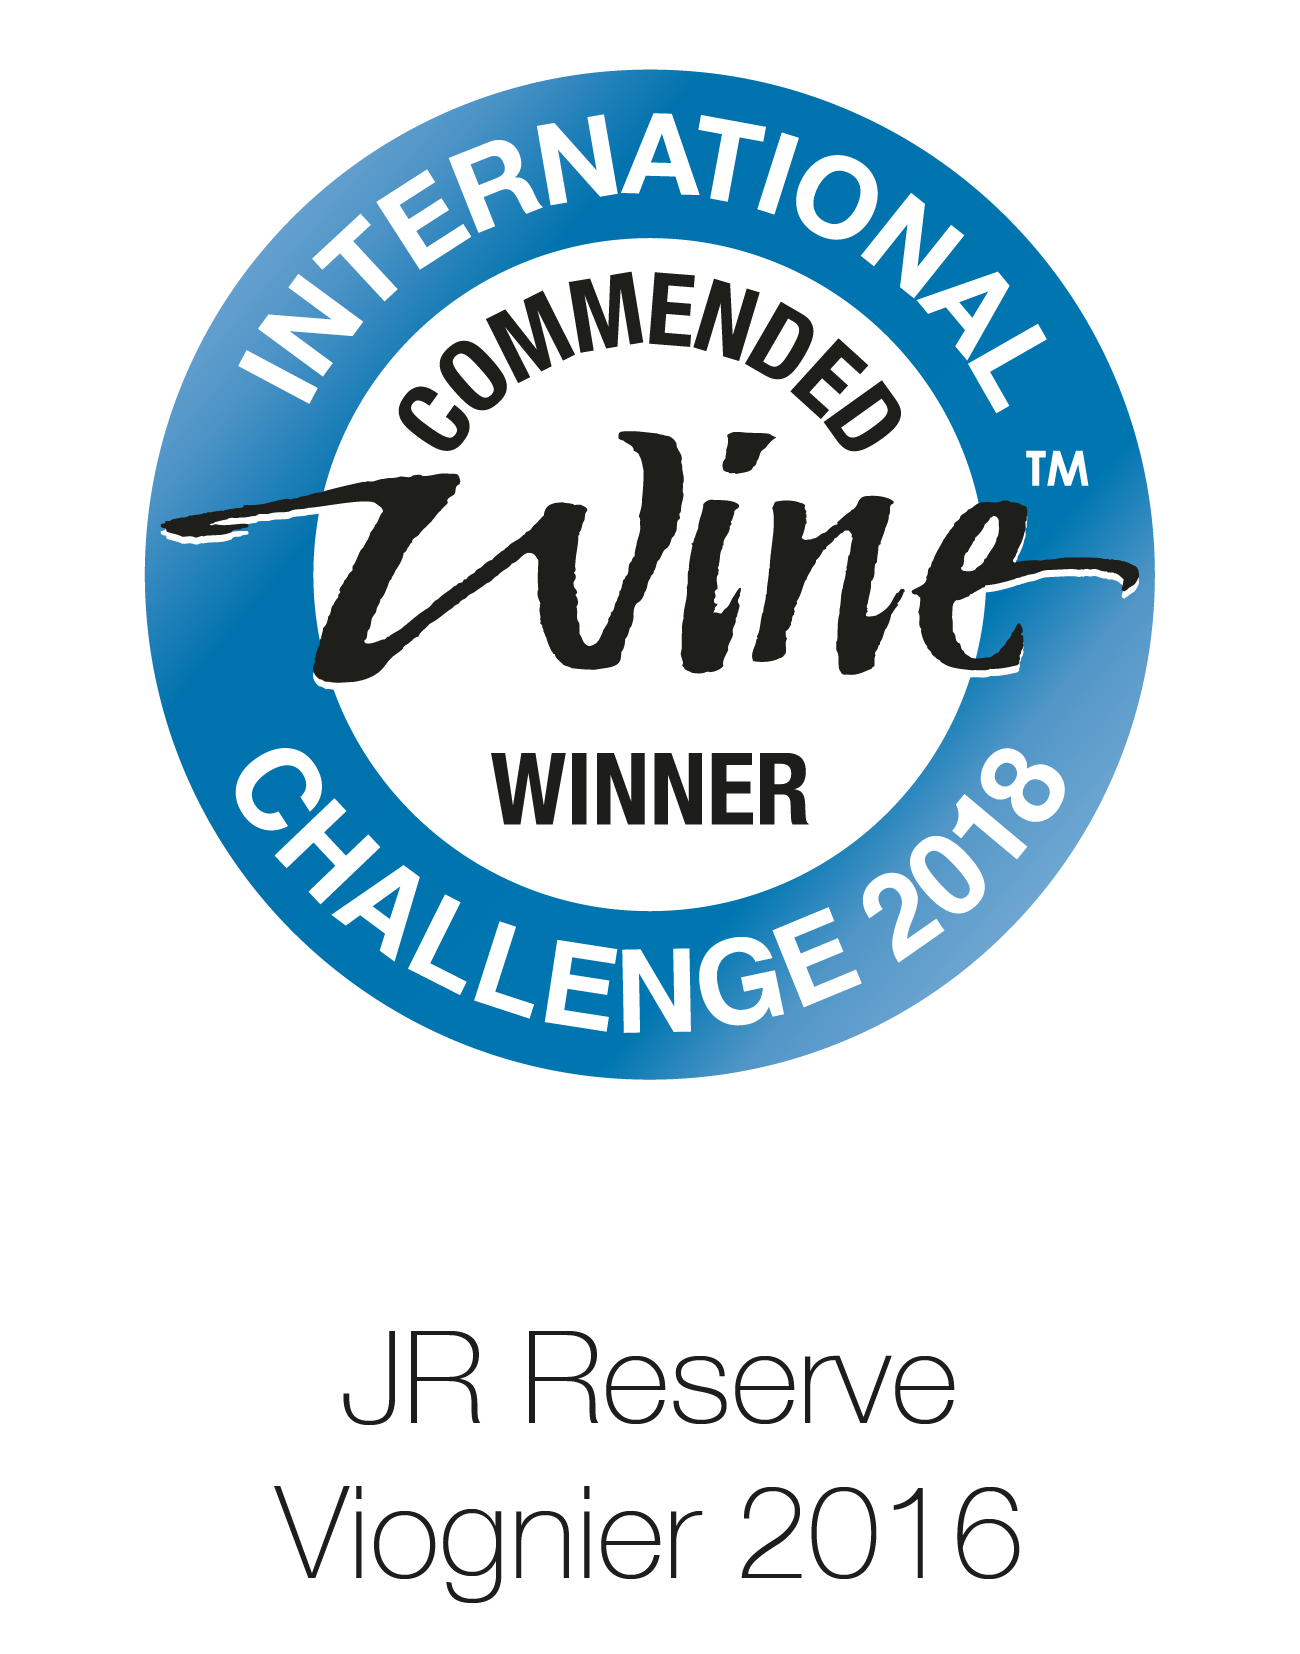 JR Wine - Reserve - Viognier 2016 - International Commended Wine Challenge 2018